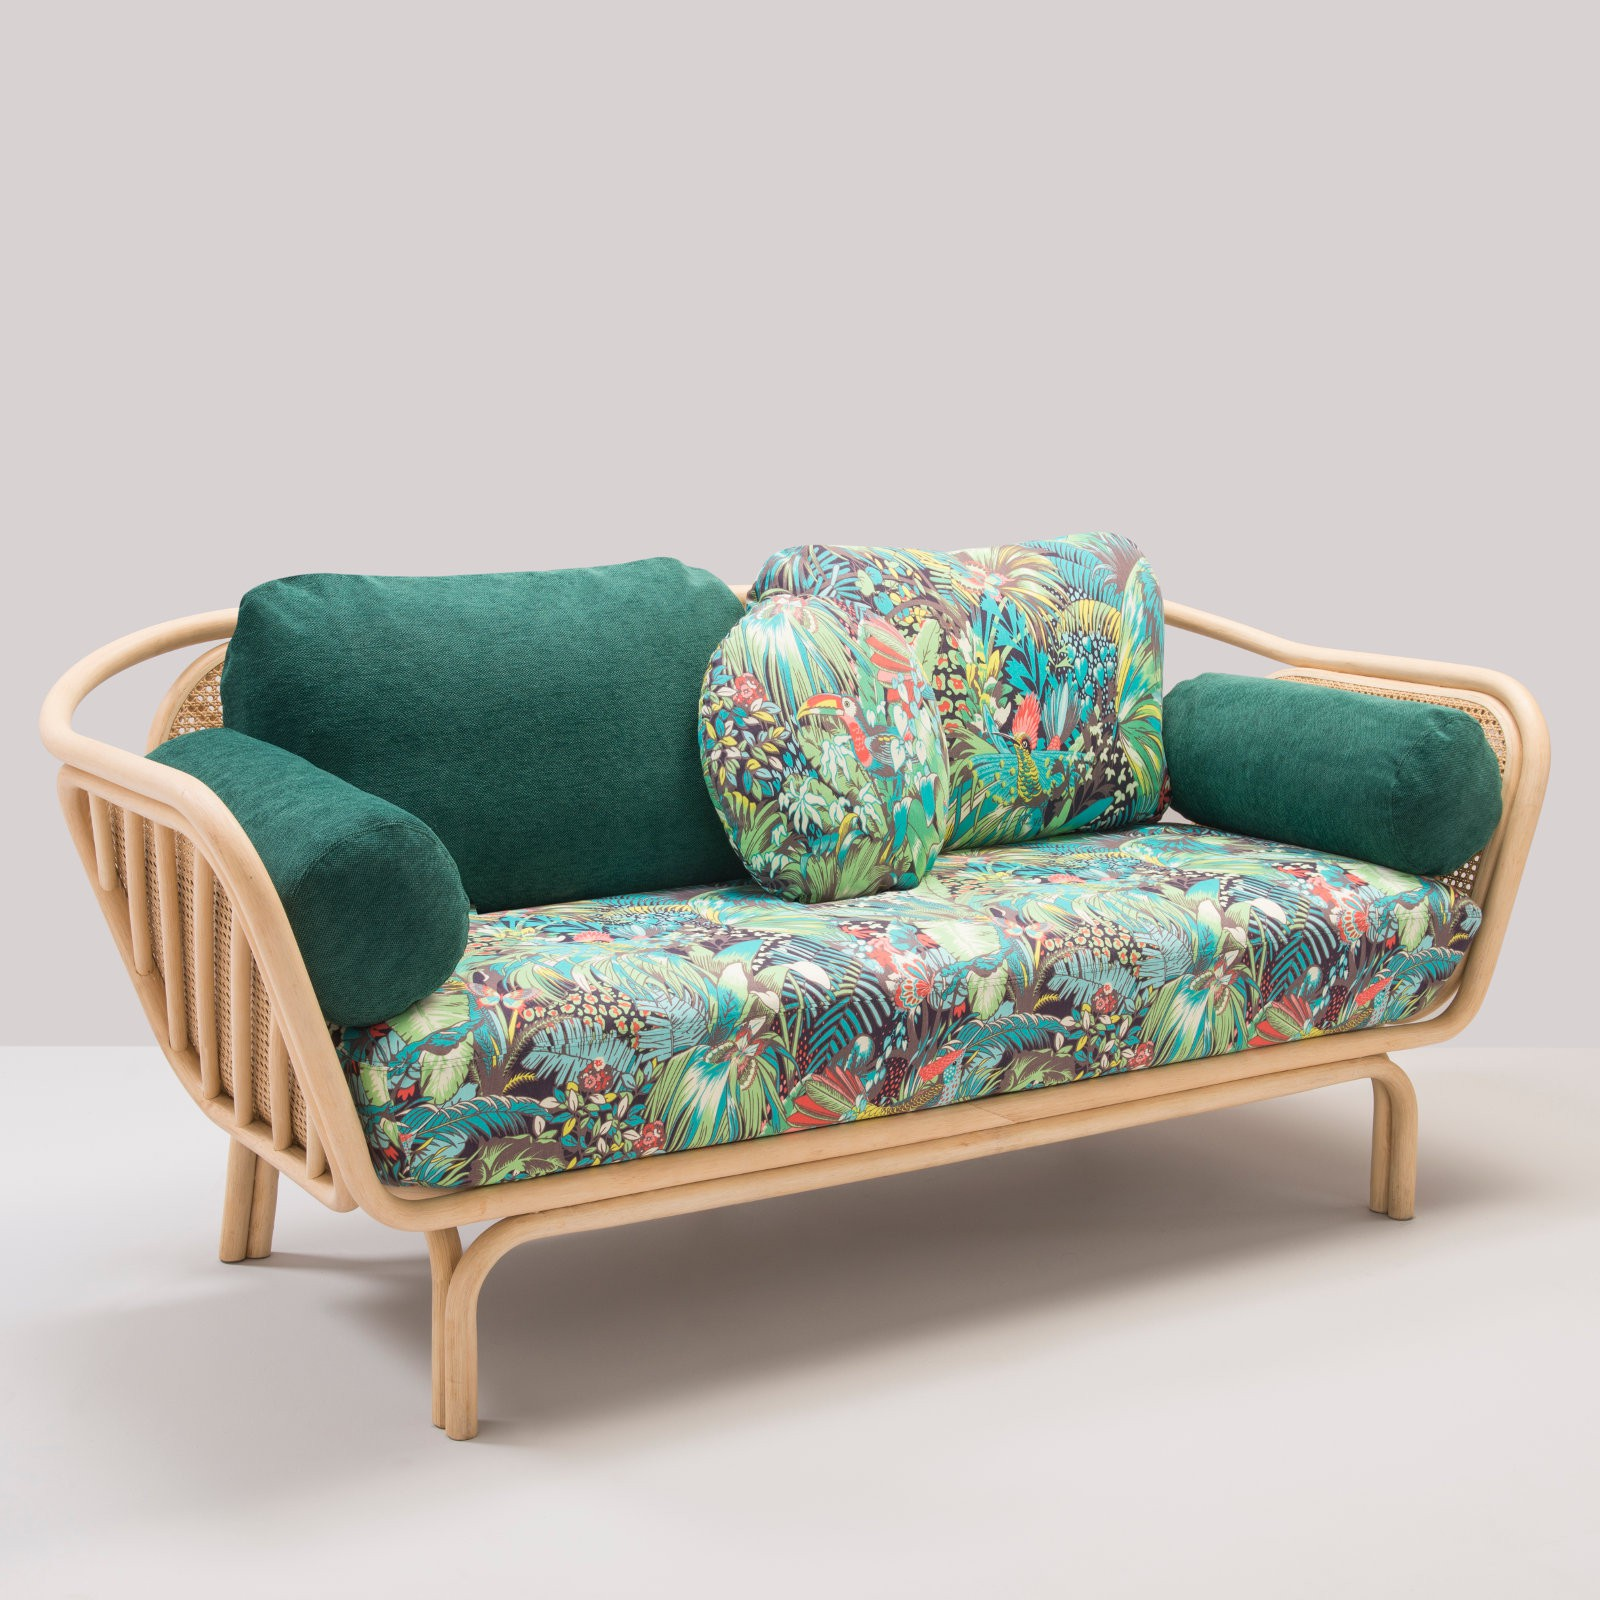 Bôa Sofa With Jungle Cushions In Rattan Designed By At Once